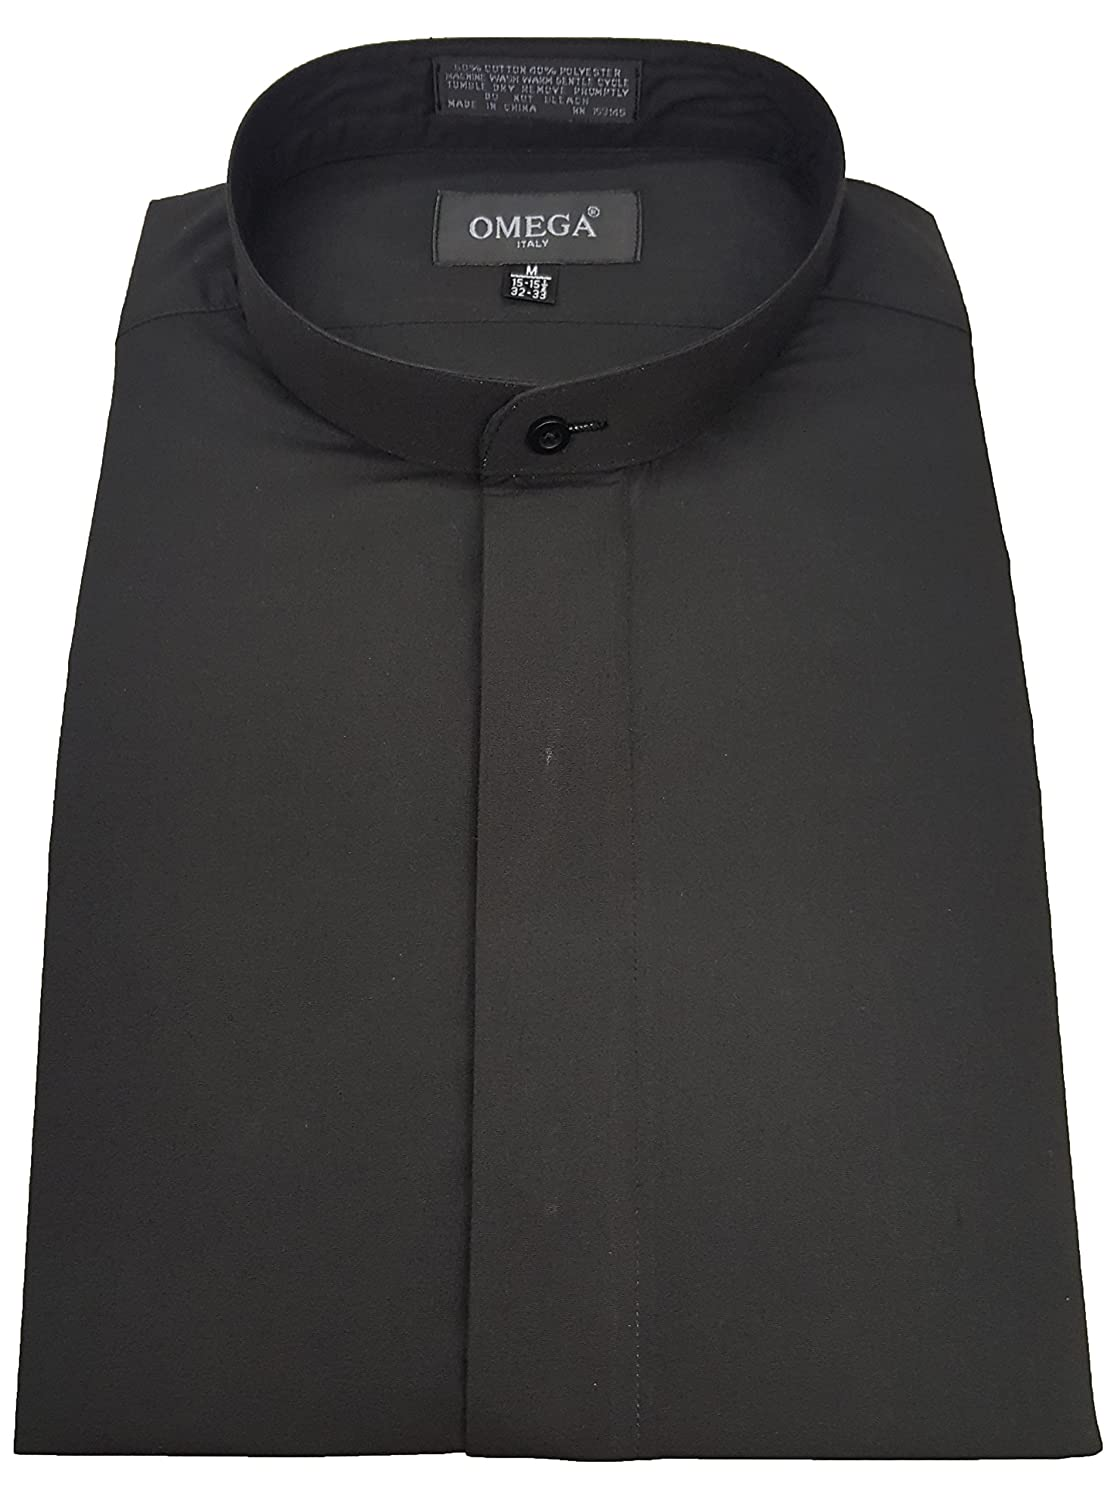 Omegatux Mens Banded Collarmandarin Collar Black Dress Shirt Non